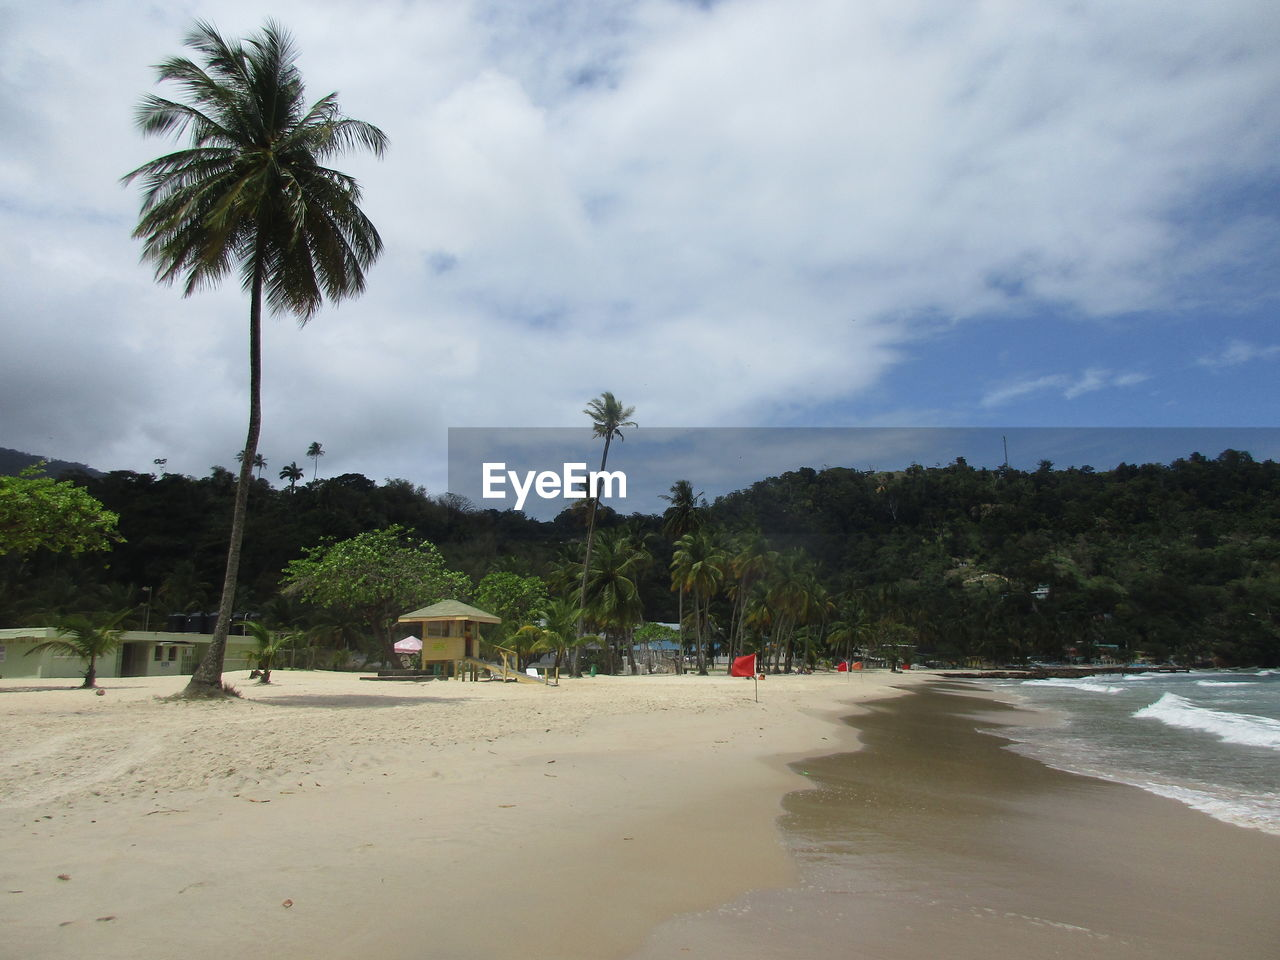 tree, palm tree, beach, sand, sky, nature, scenics, tranquility, beauty in nature, growth, sea, no people, outdoors, water, day